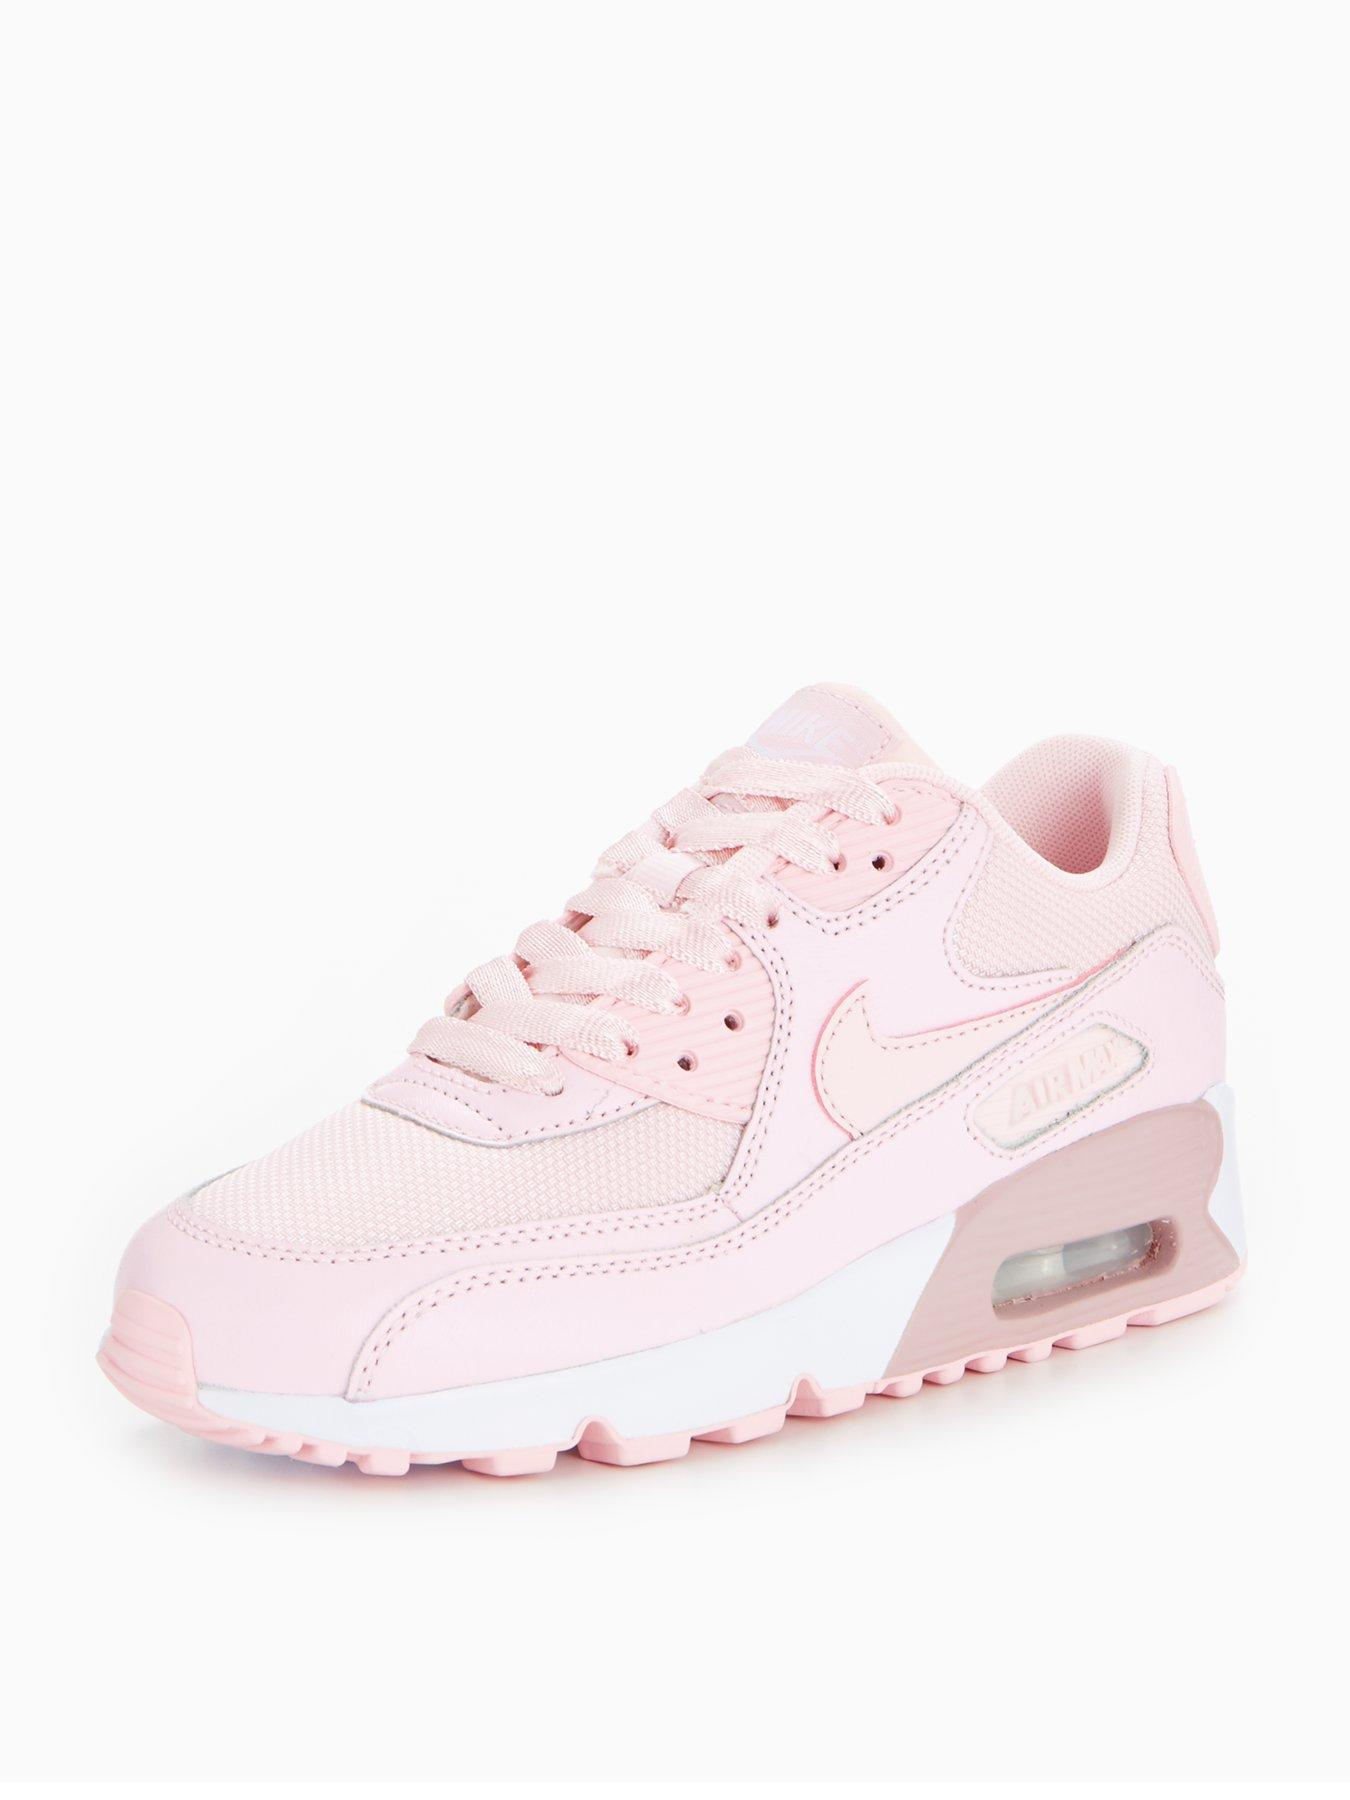 The kids model women gap Dis sneakers running shoes which NIKE AIR MAX 90 SE MESH GS Kie Ney AMAX 90 SE mesh pink 880,305 600 adult can wear